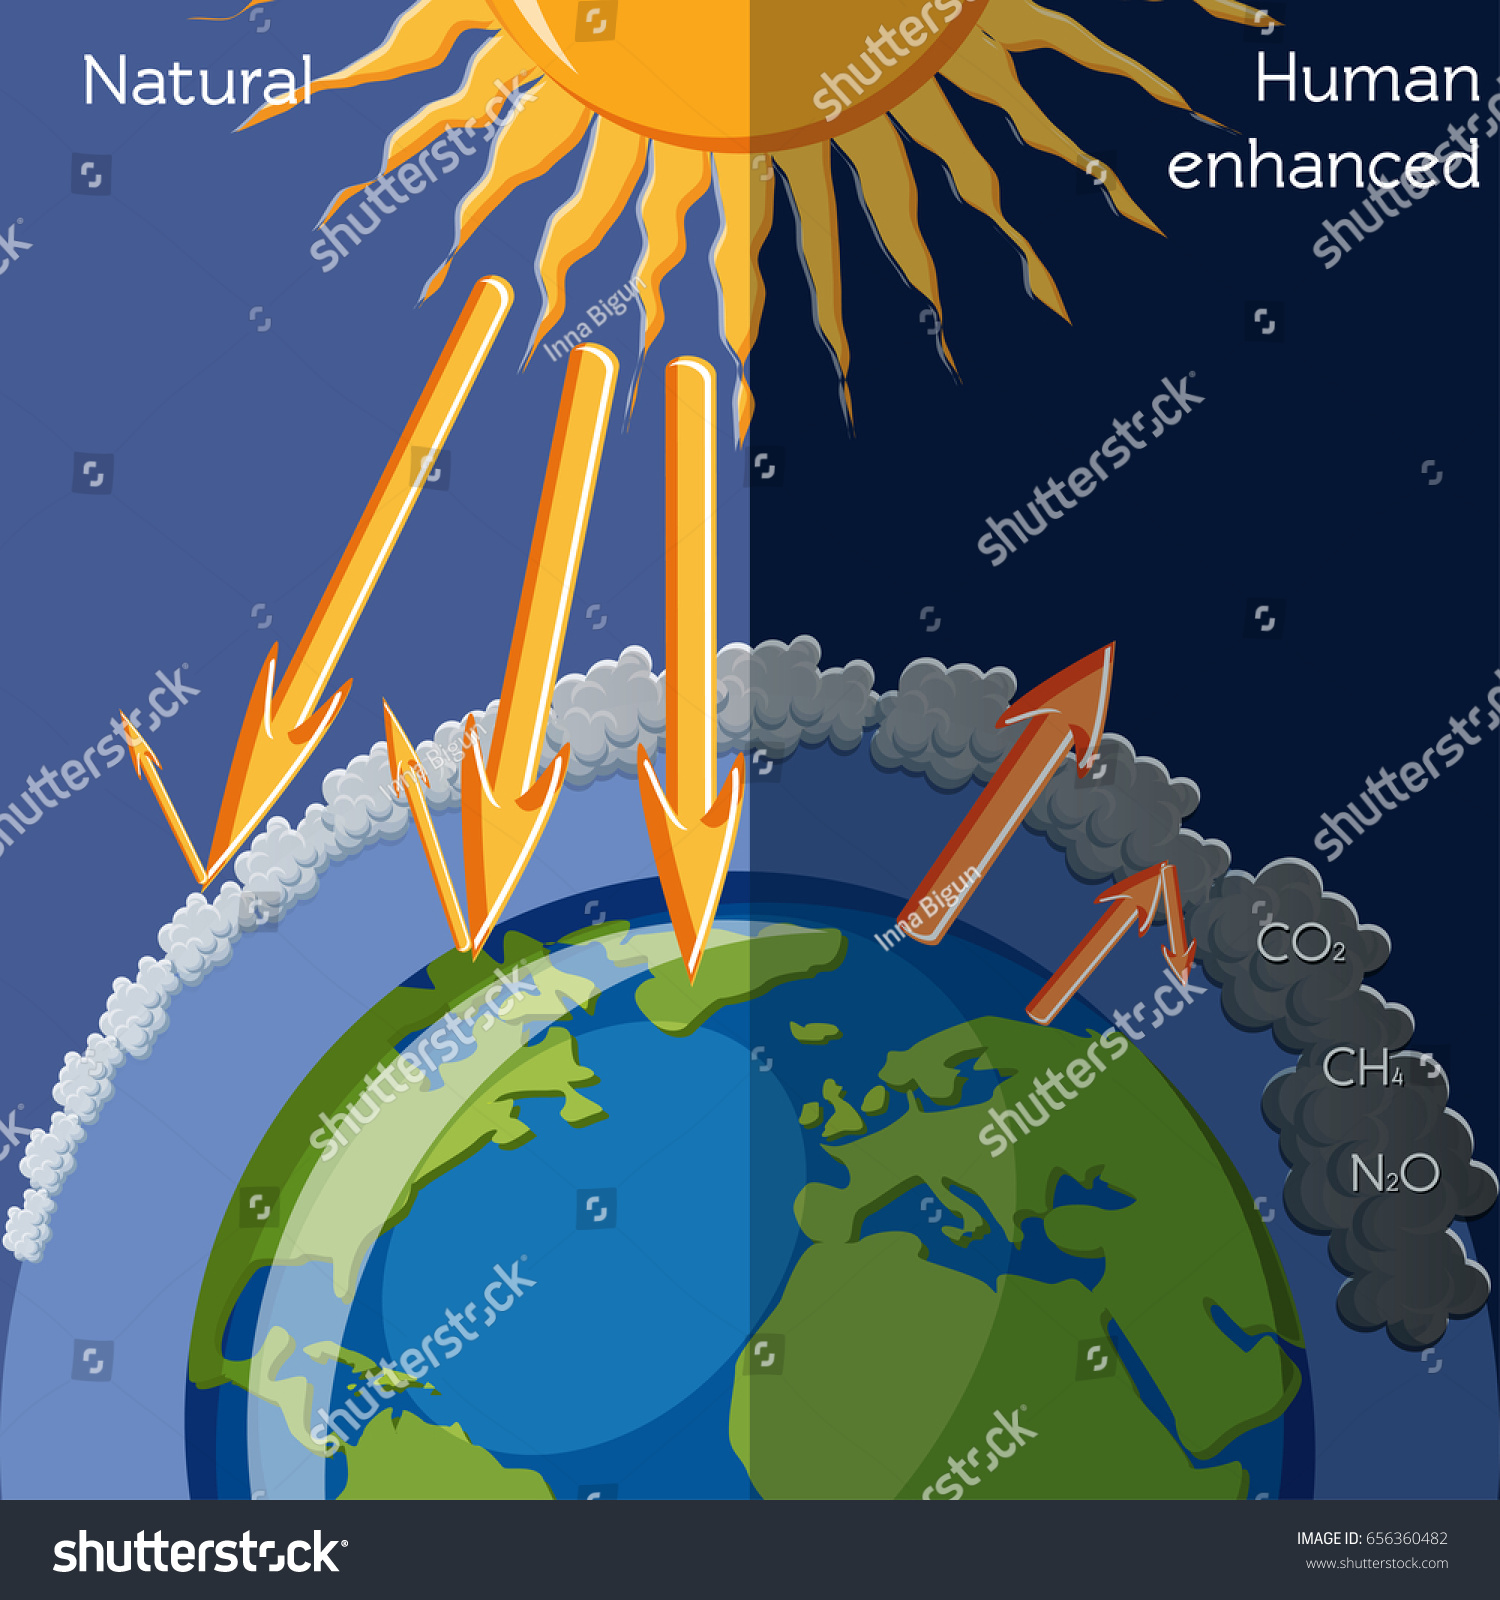 Natural human enhanced greenhouse effect diagram stock vector natural and human enhanced greenhouse effect diagram showing solar radiation and planet earth global warming pooptronica Choice Image